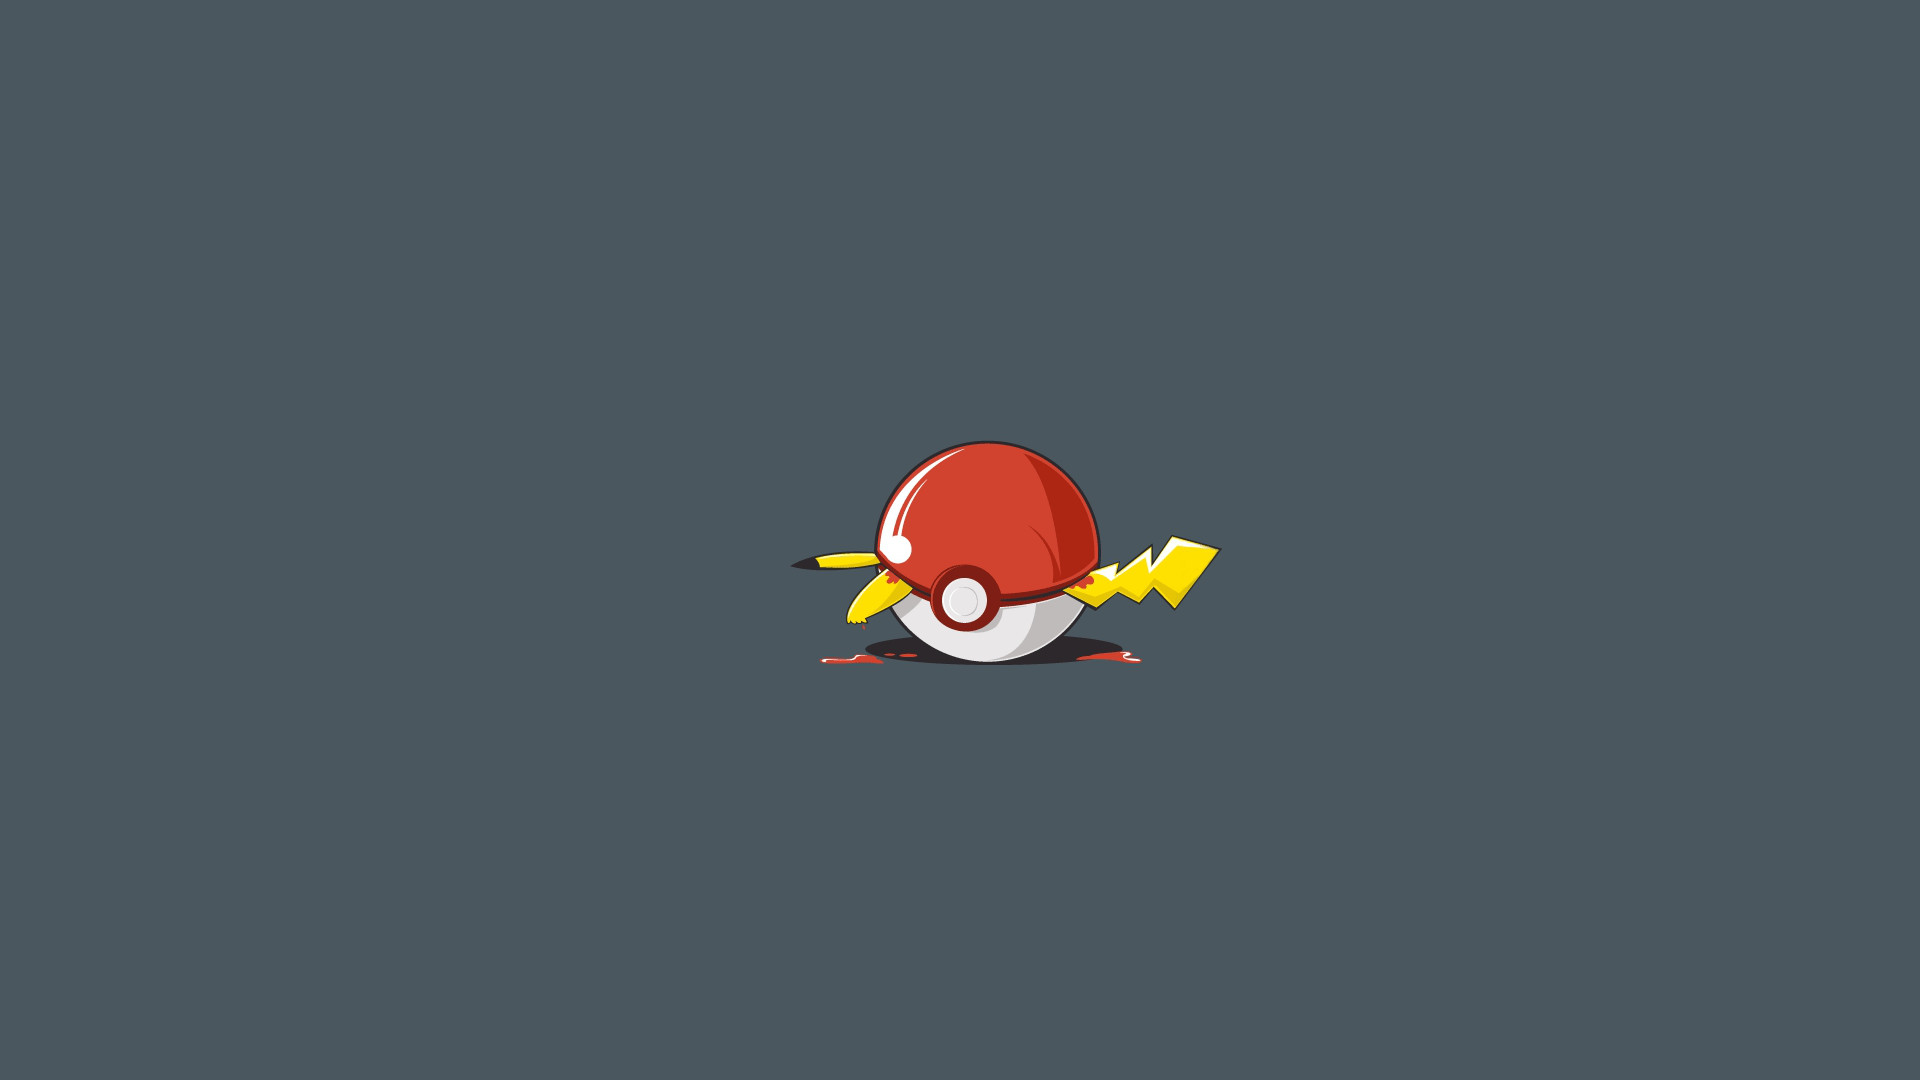 Pikachu [1920×1080] Need #iPhone #6S #Plus #Wallpaper/ #Background for  #IPhone6SPlus? Follow iPhone 6S Plus 3Wallpapers/ #Backgrounds Must to Have  …